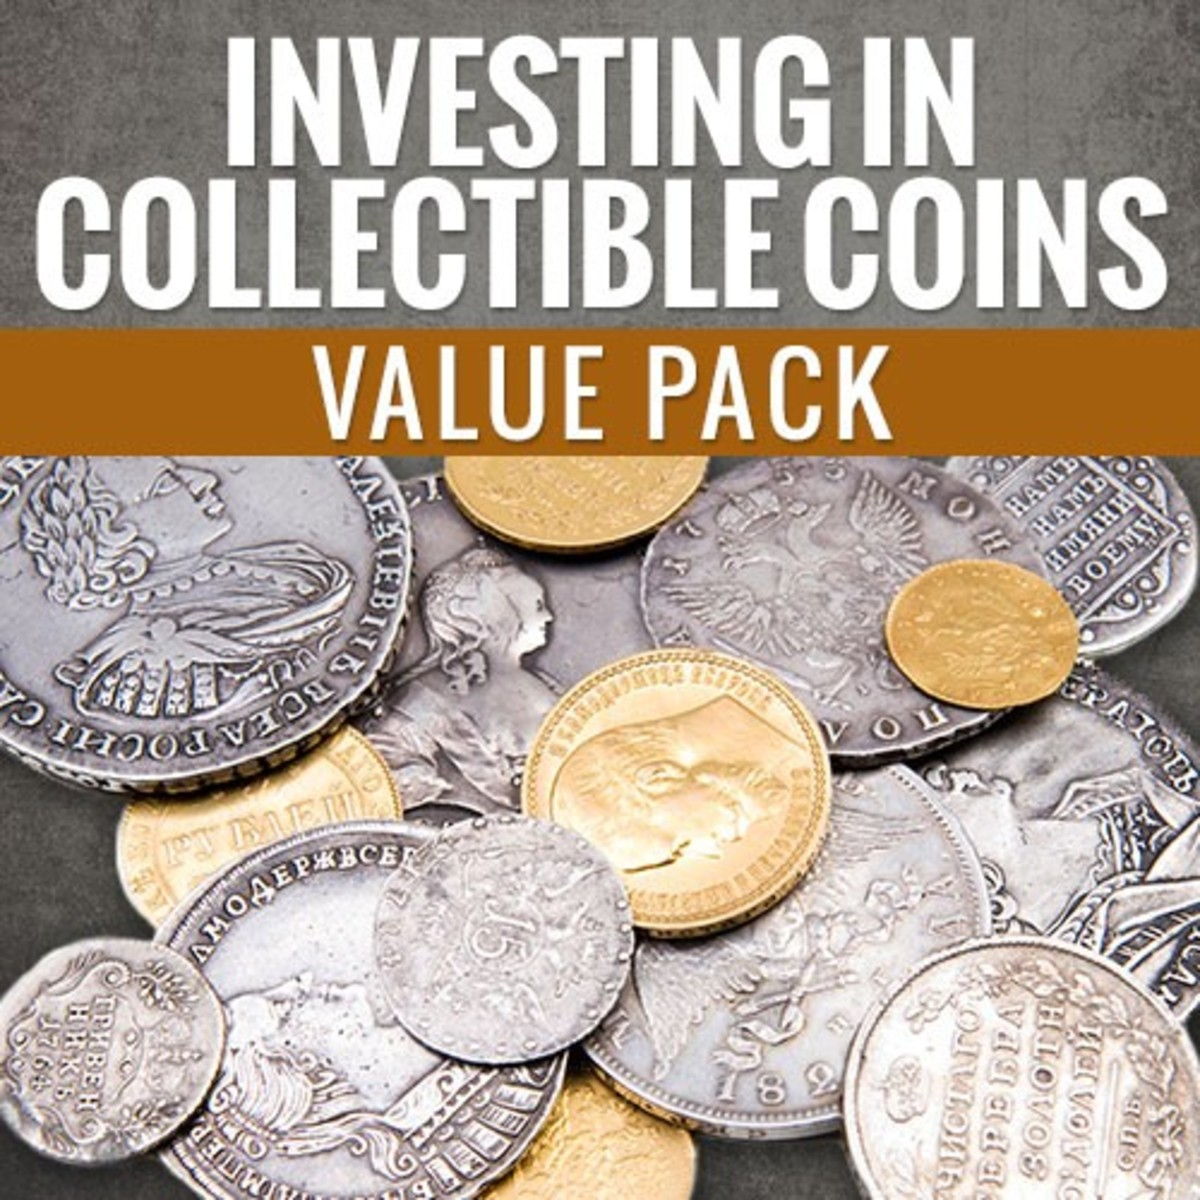 Check out this pack today to learn about investing in collectible coins!